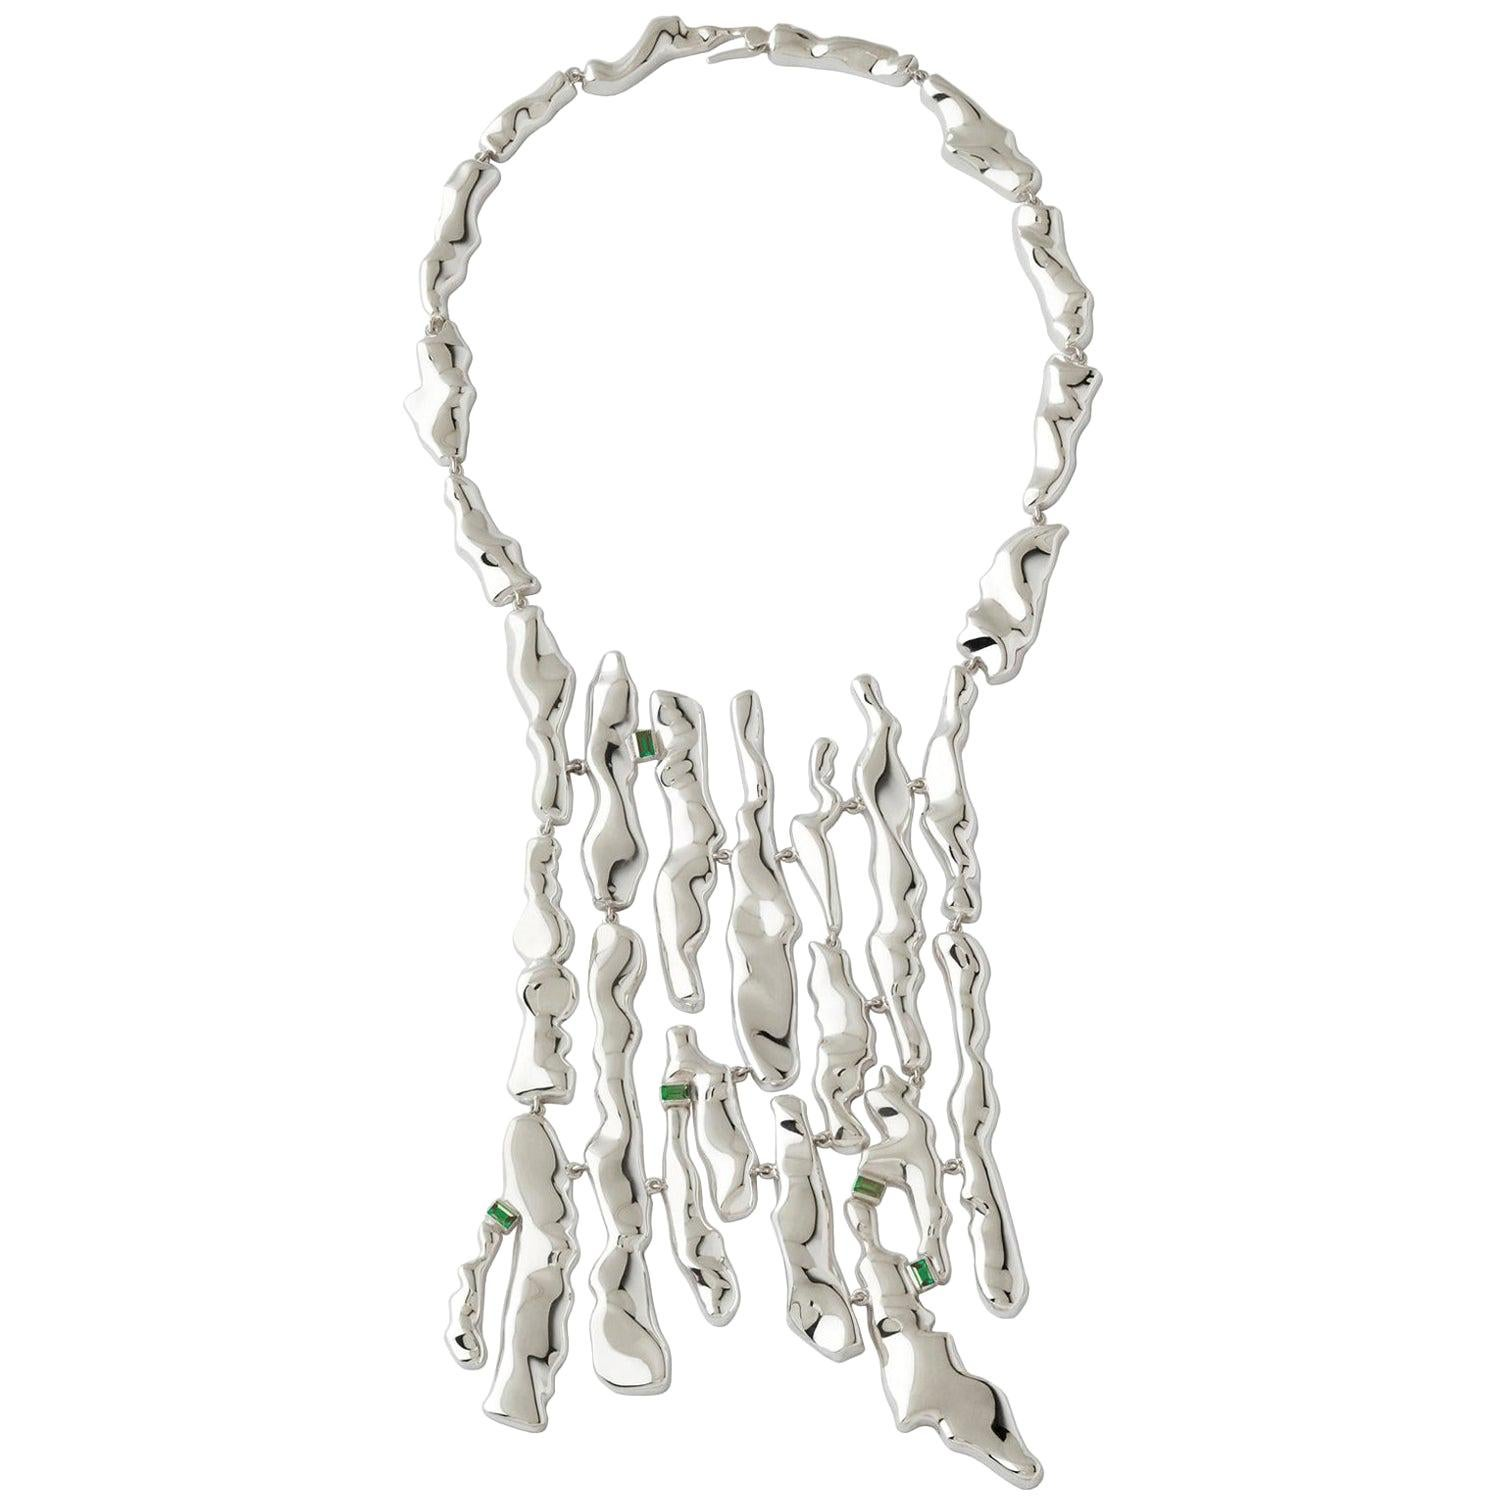 Nathalie Jean Contemporary Tourmaline Sterling Silver Drop Link Necklace